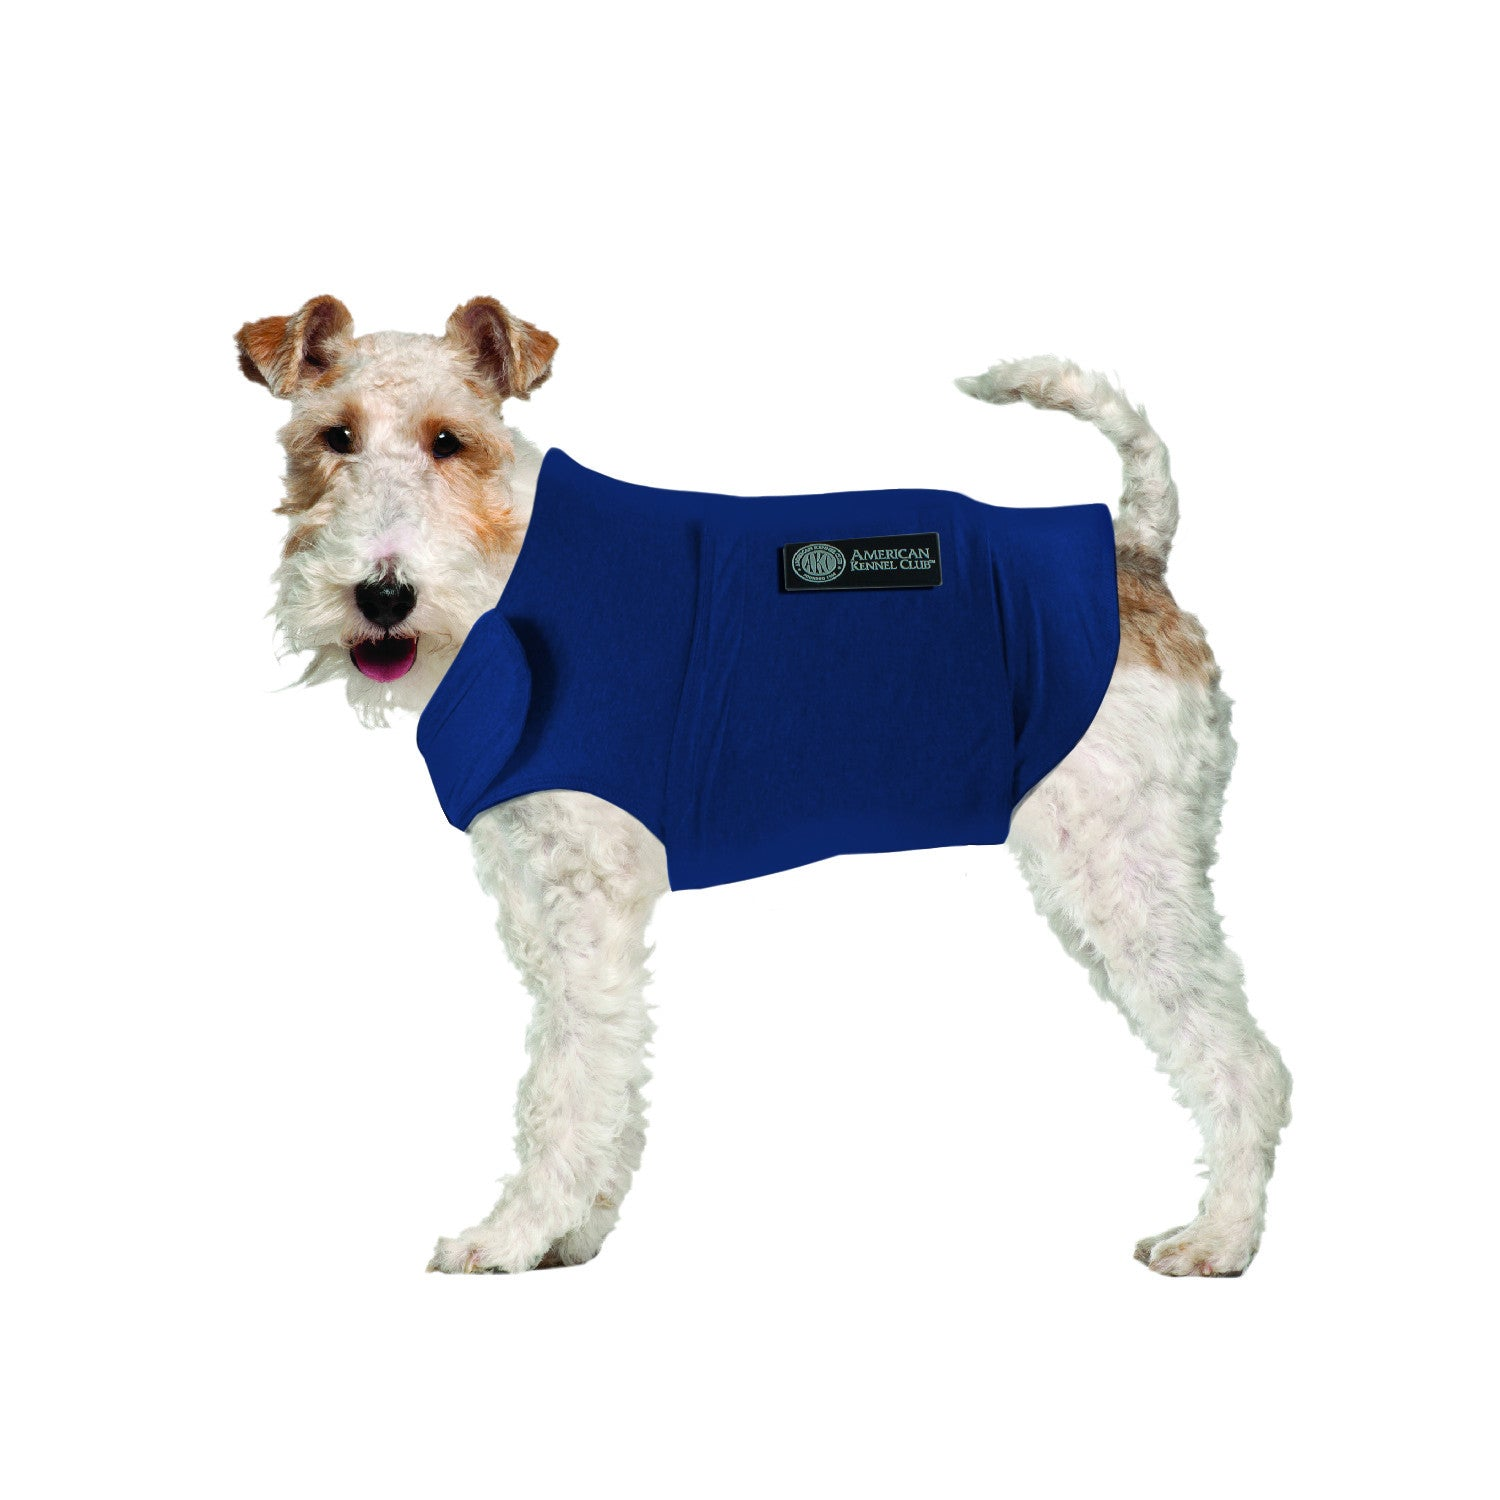 Calming Coat- Anti-Anxiety and Calming Wrap for your Dog